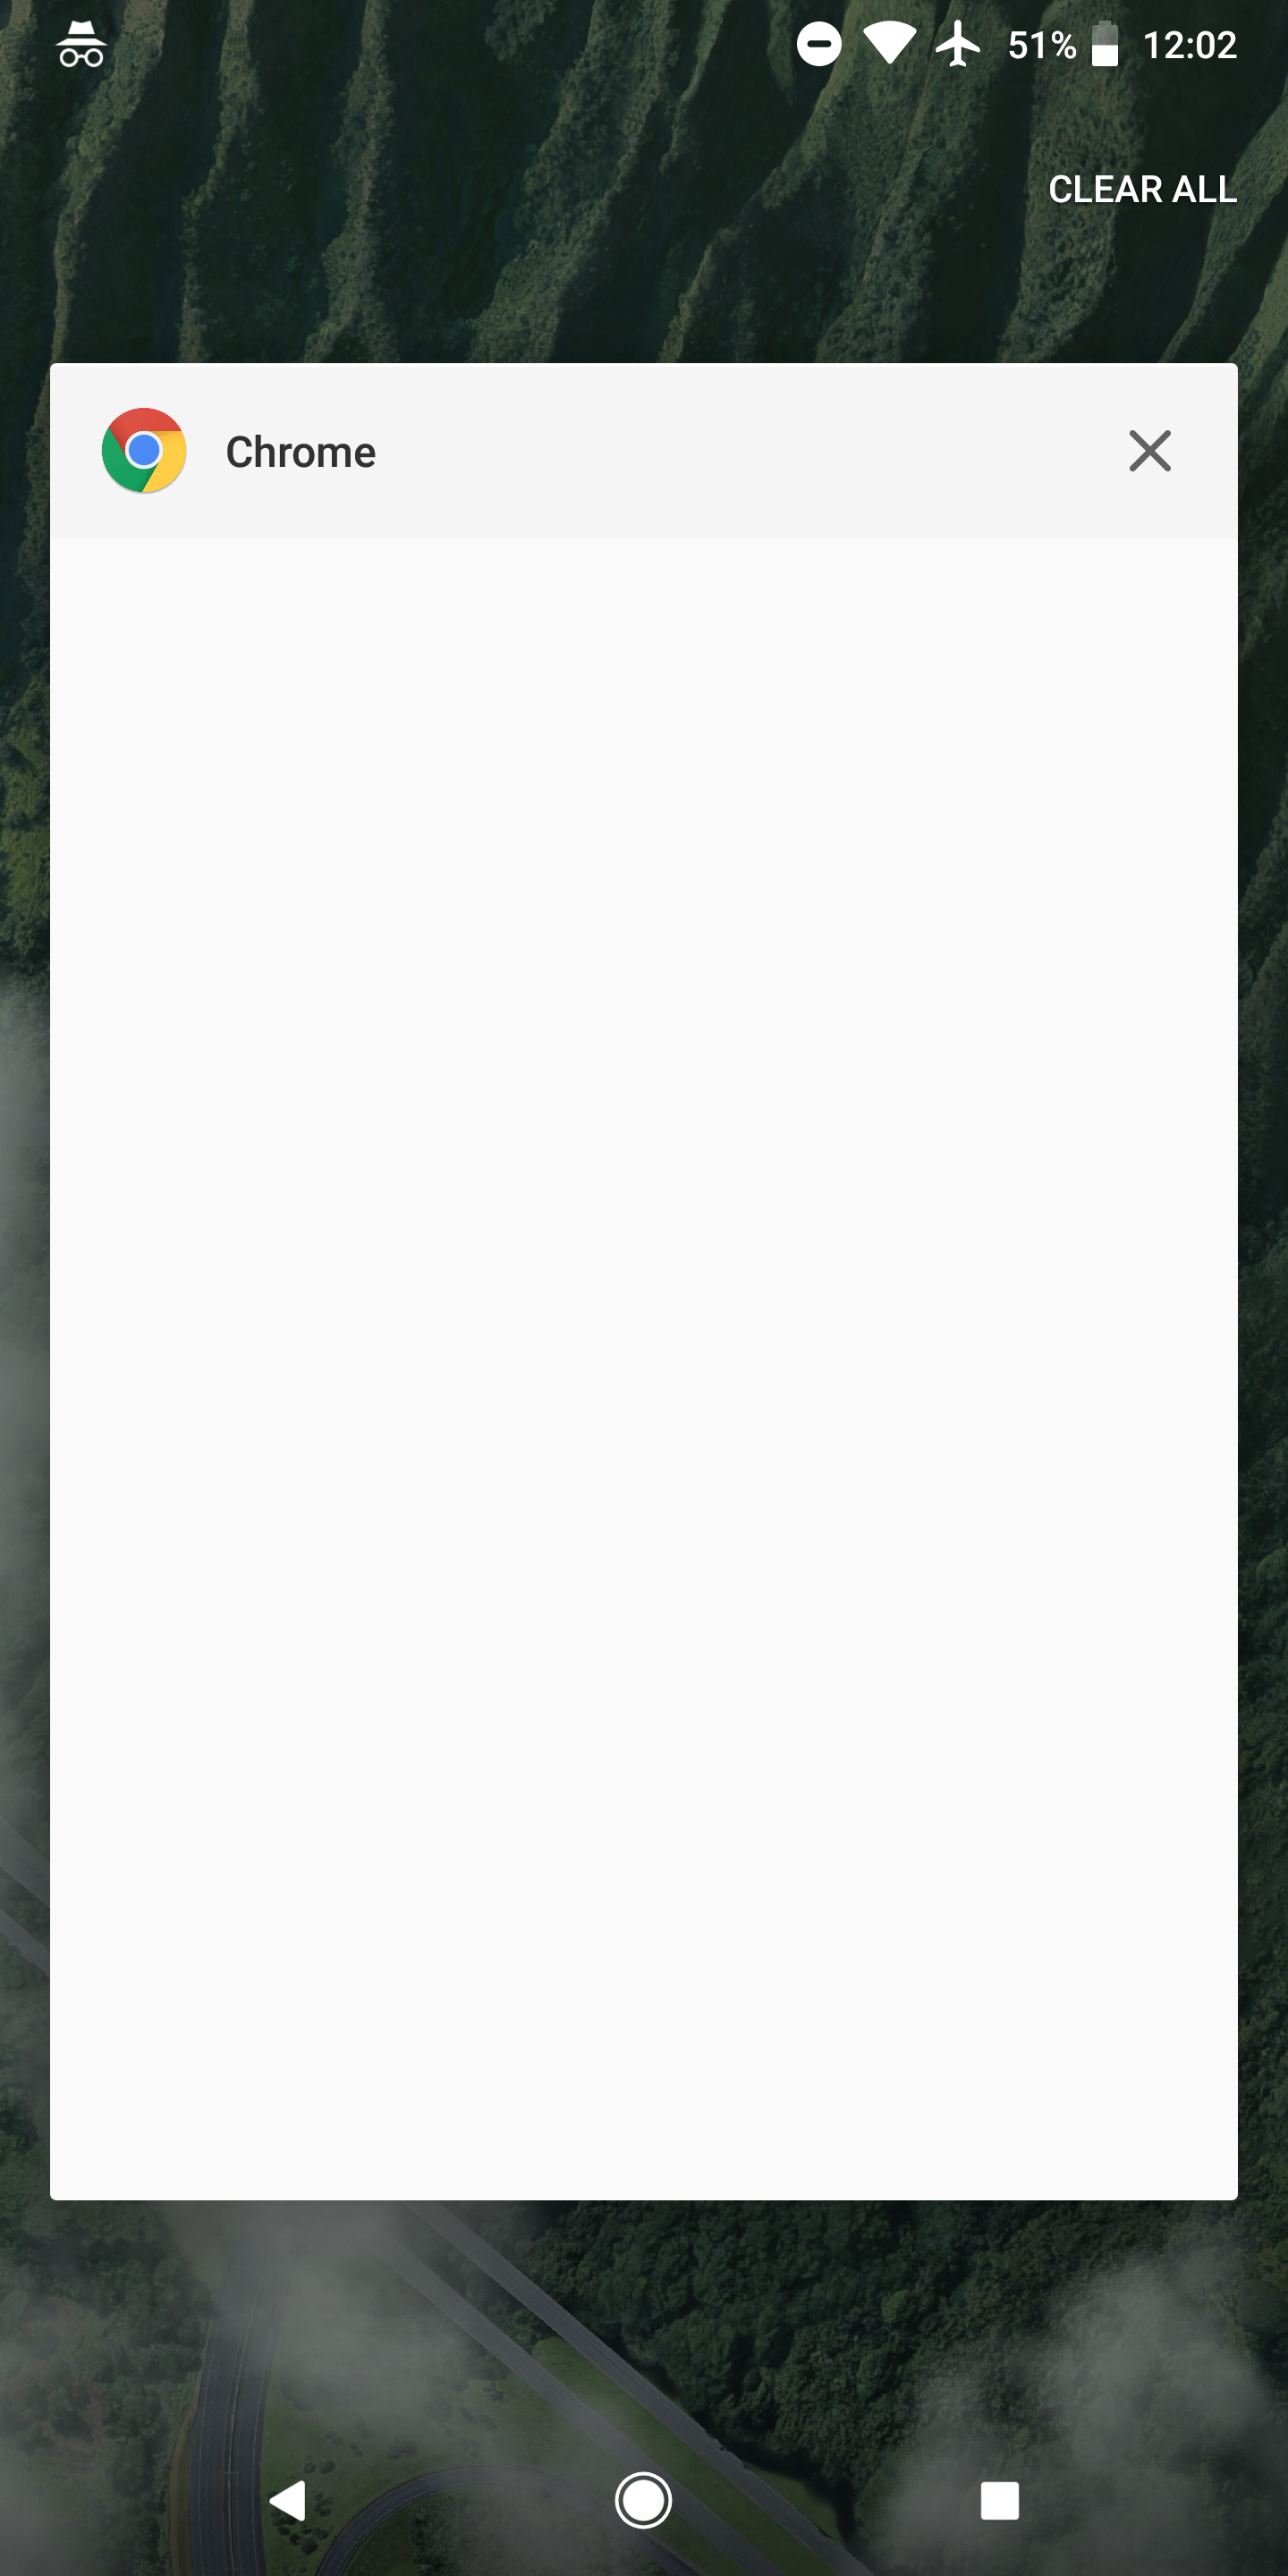 Incognito mode in Chrome 65+ blocks Android screenshots